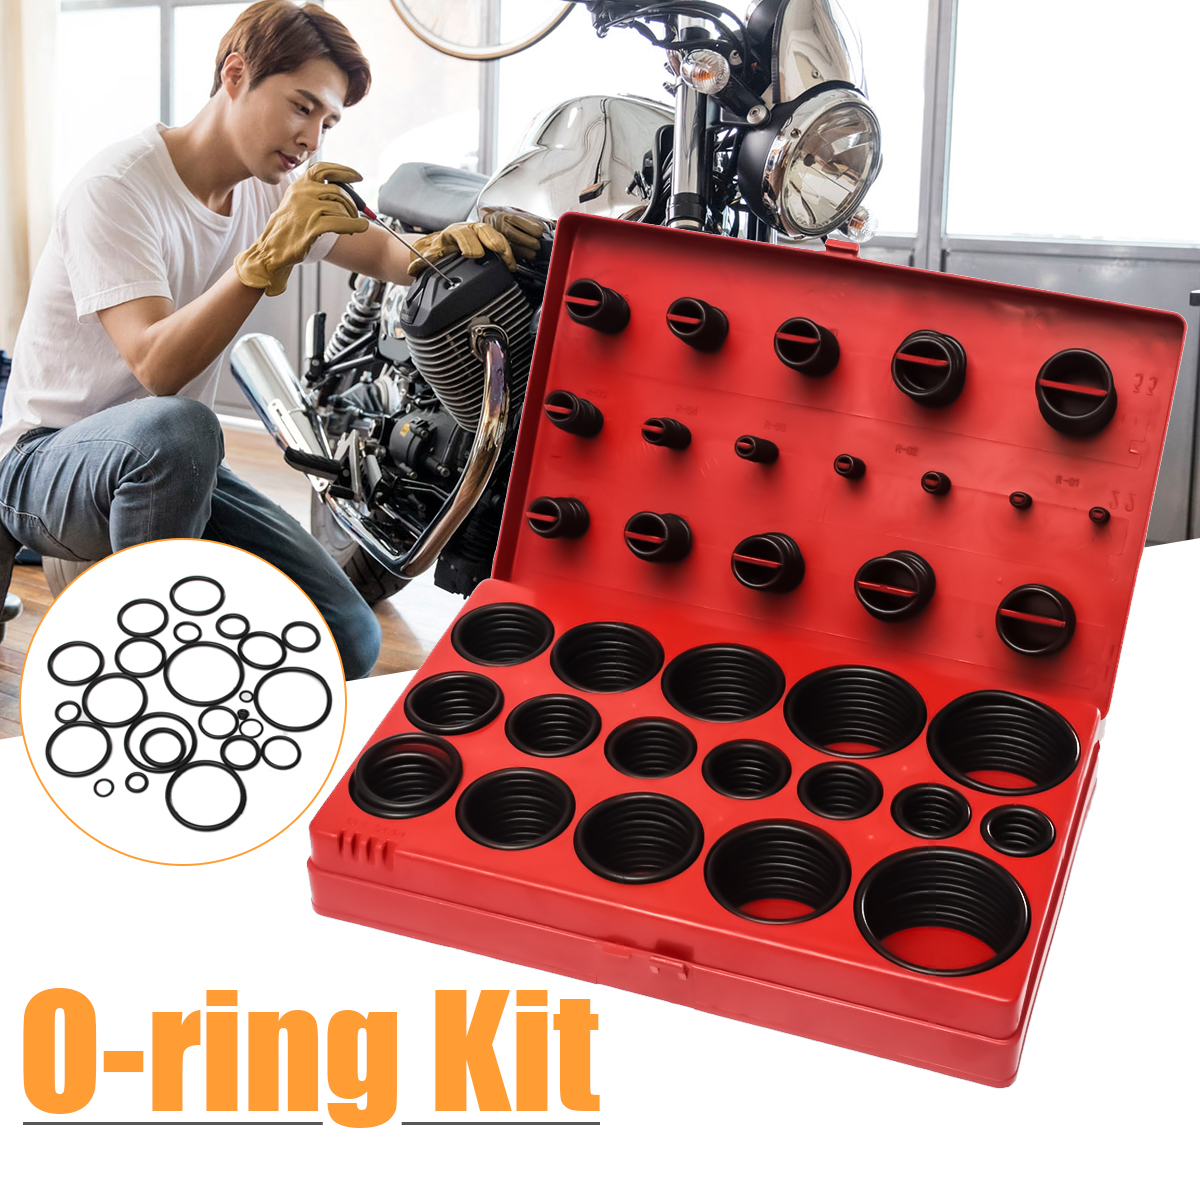 419Pcs Assorted O Ring Rubber Seal Assortment Set Kit Includes 32 Size Garage Plumbing With Case for Garages General Plumbers цена